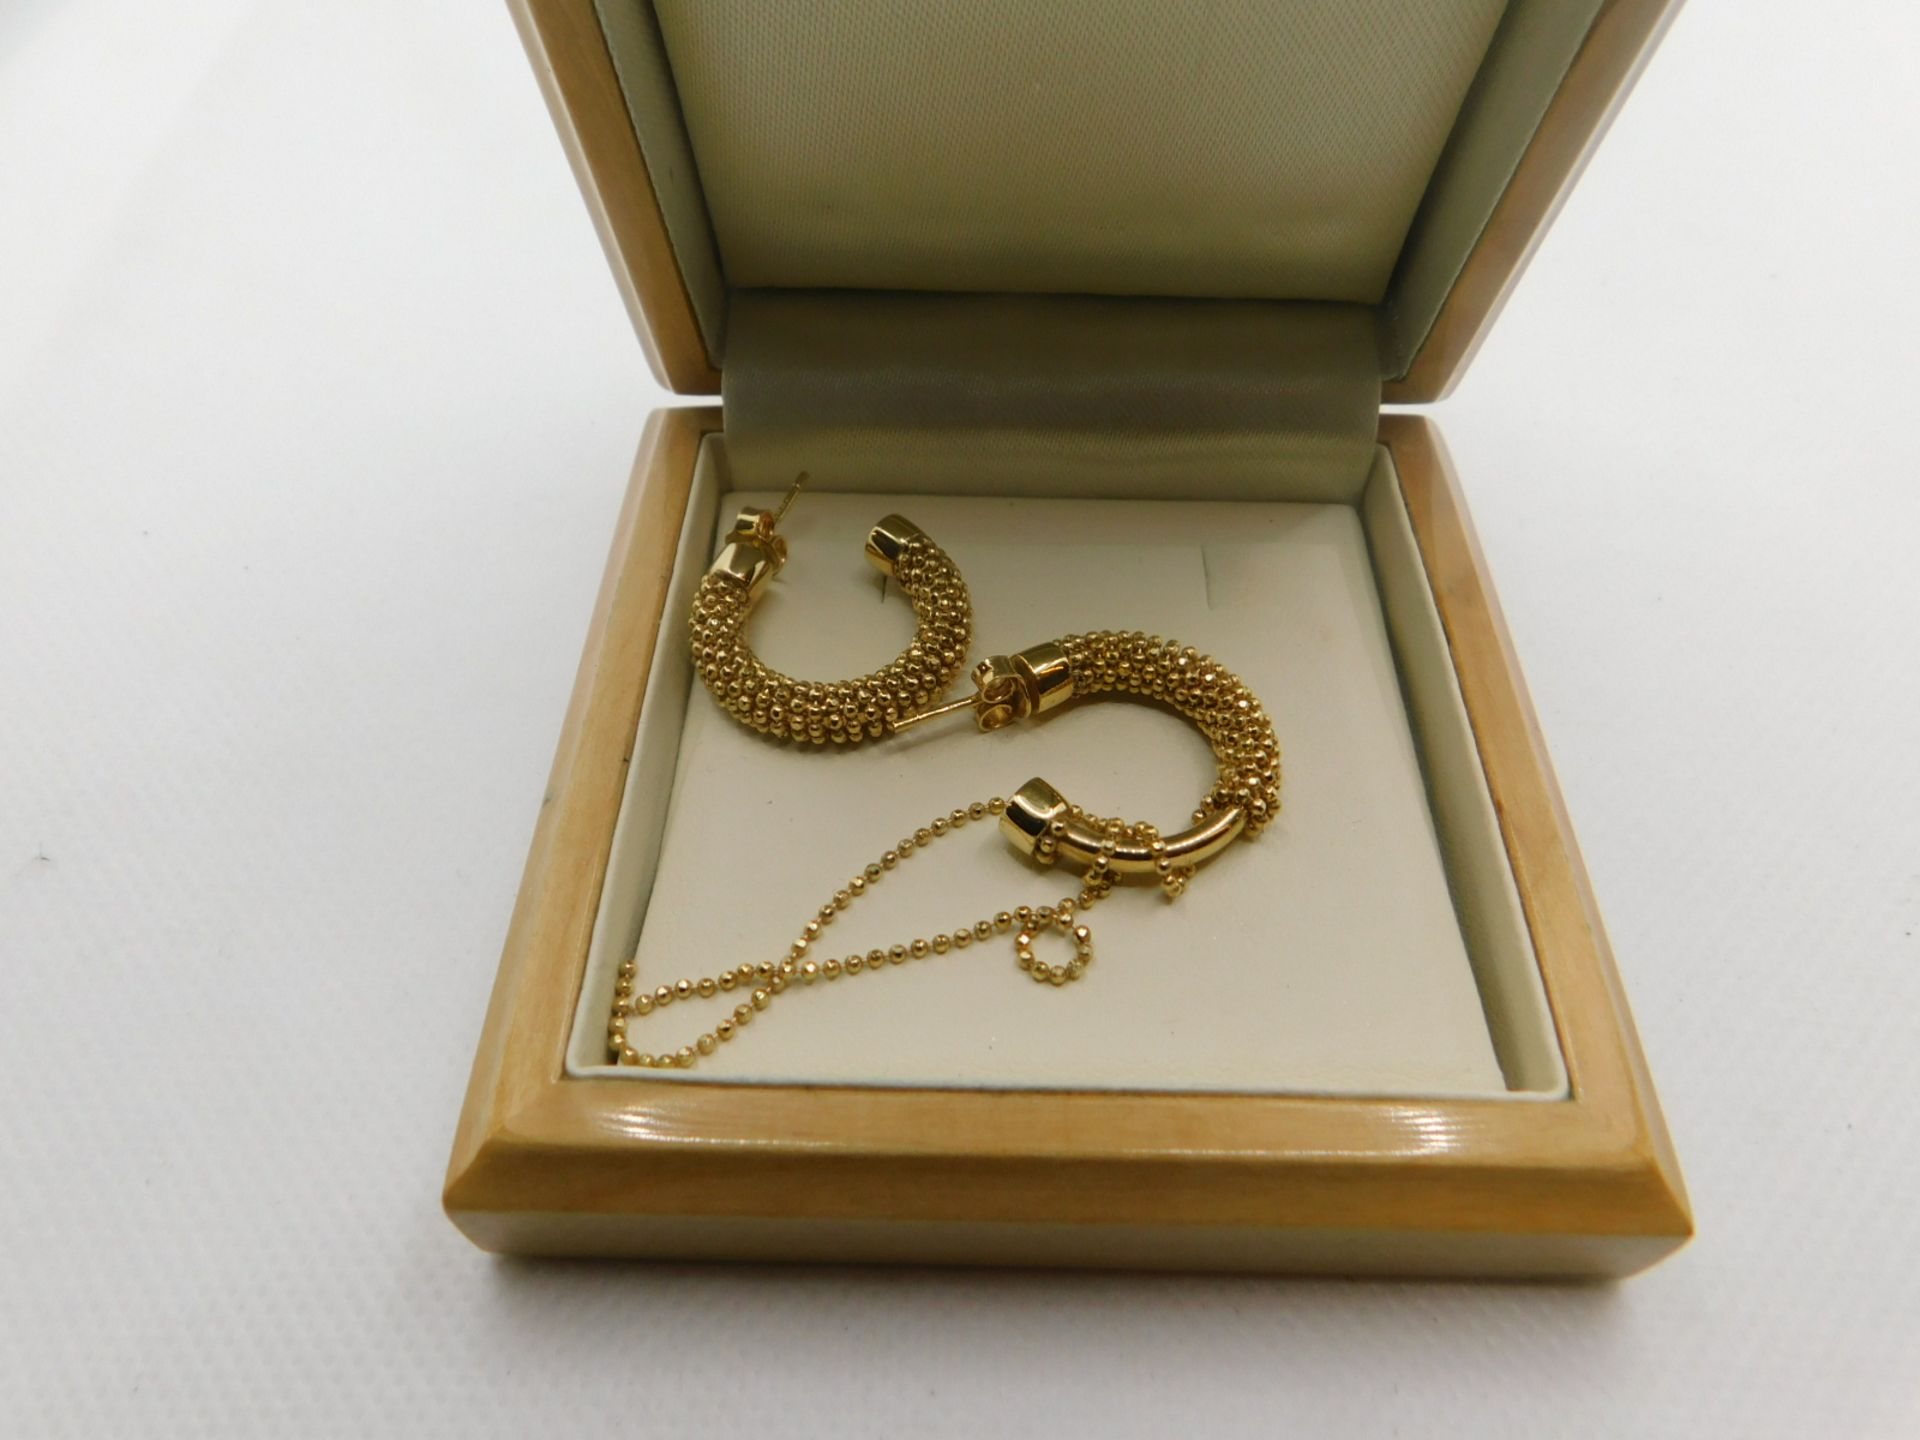 1 BOXED 14KT GOLD BEADED EARRINGS RRP £399 (ON 1 EARRING BEADS COMING OFF)